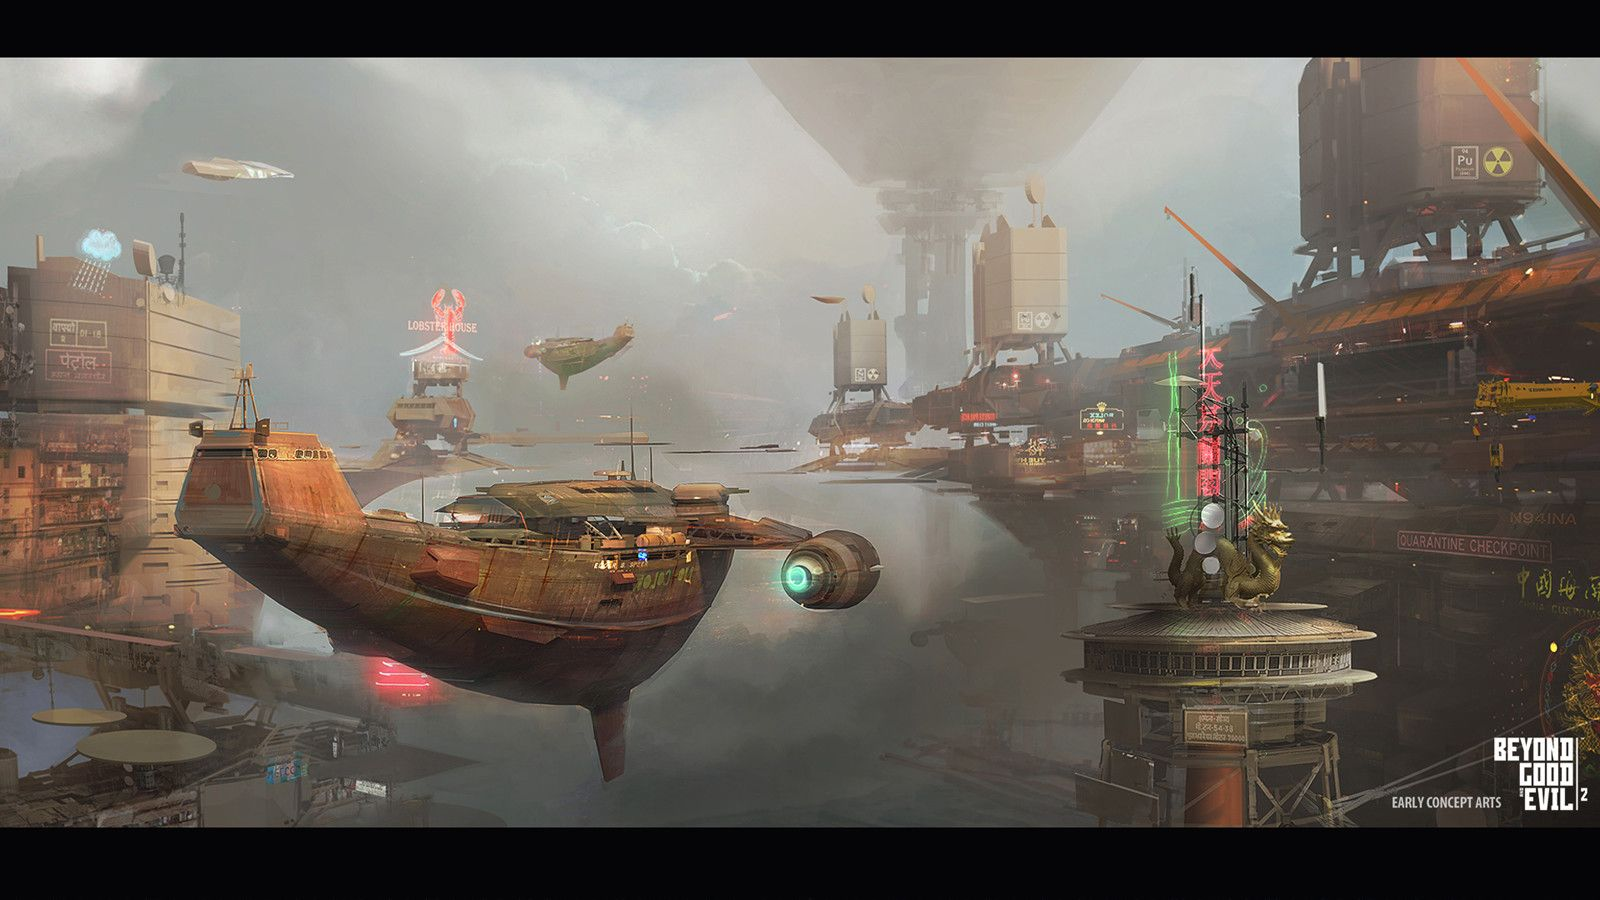 Pin By Crazy Lifestyle Interest On Beyond Good And Evil 2 Beyond Good And Evil Spaceship Art Art